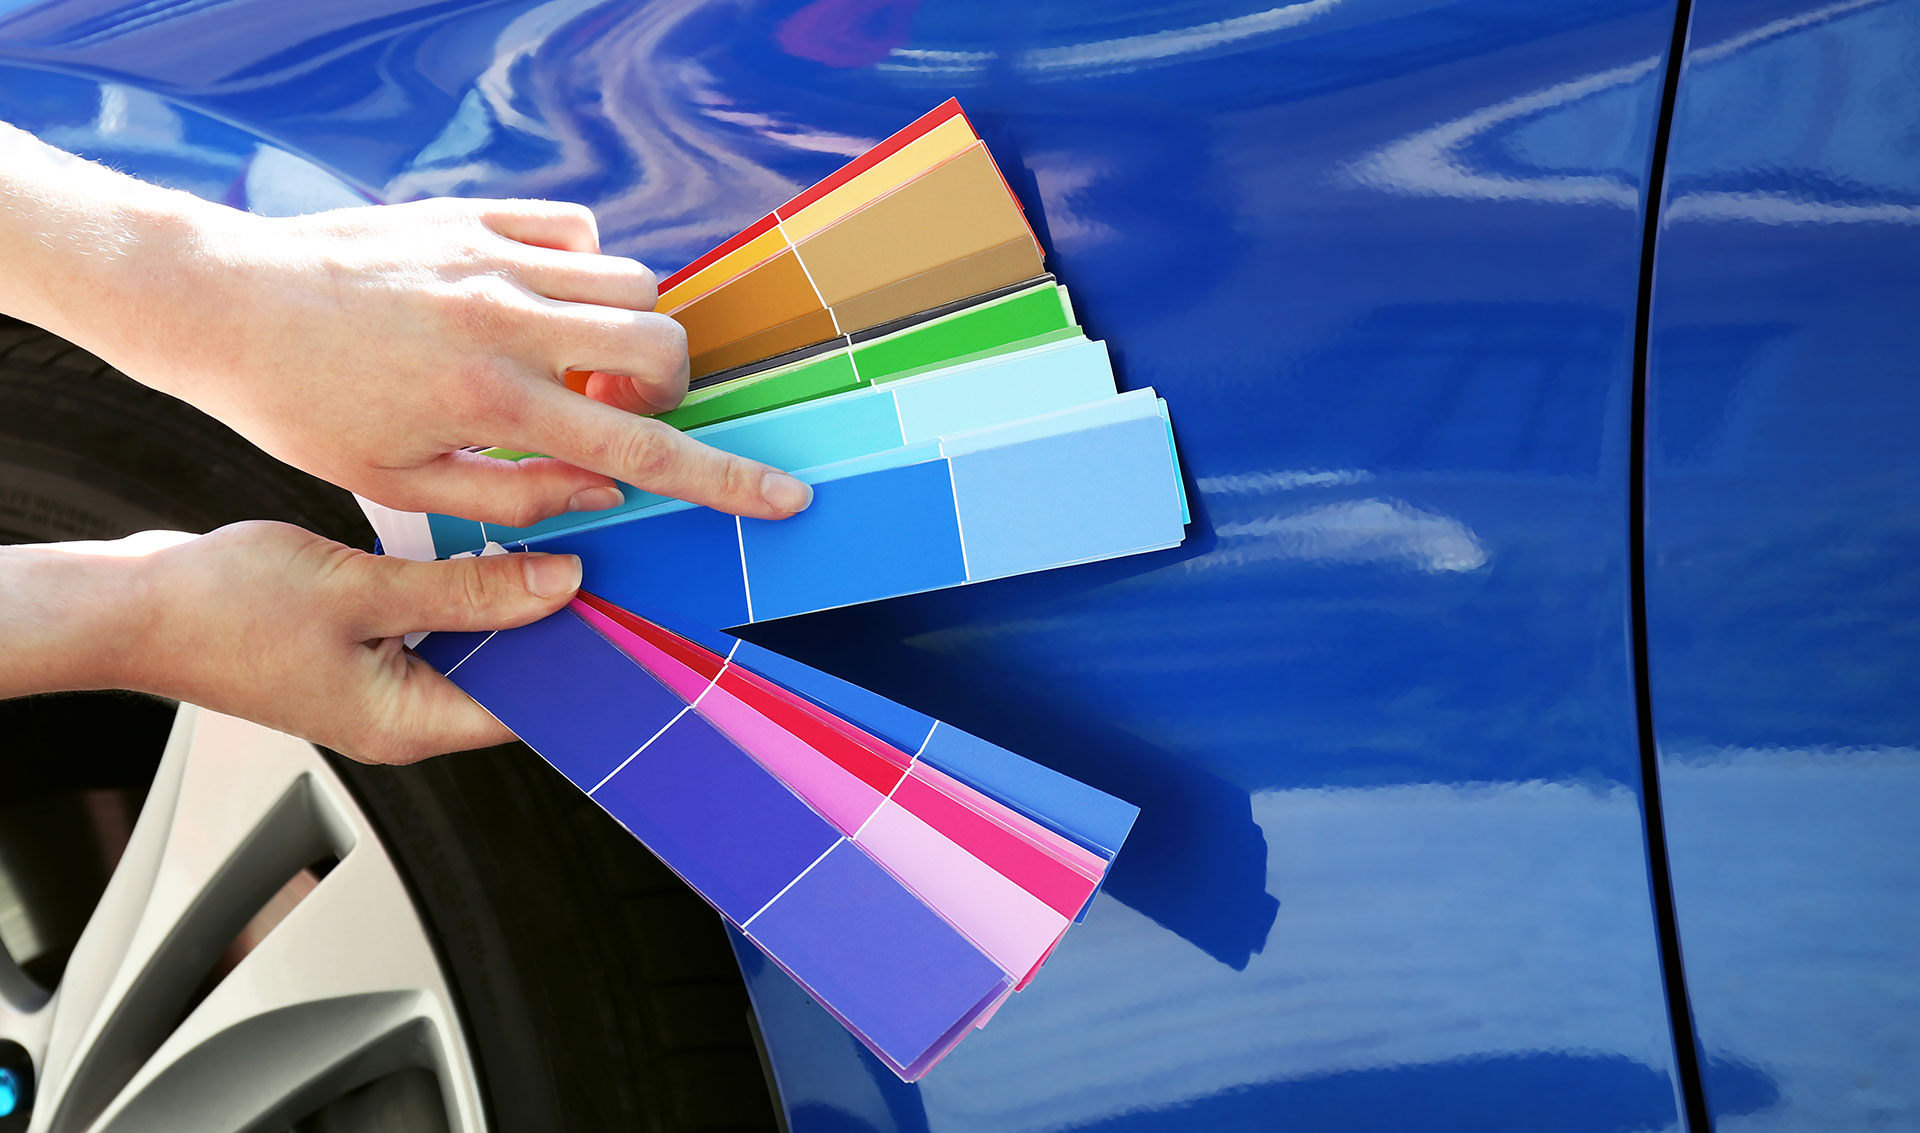 Holding various color swatches against a blue car.